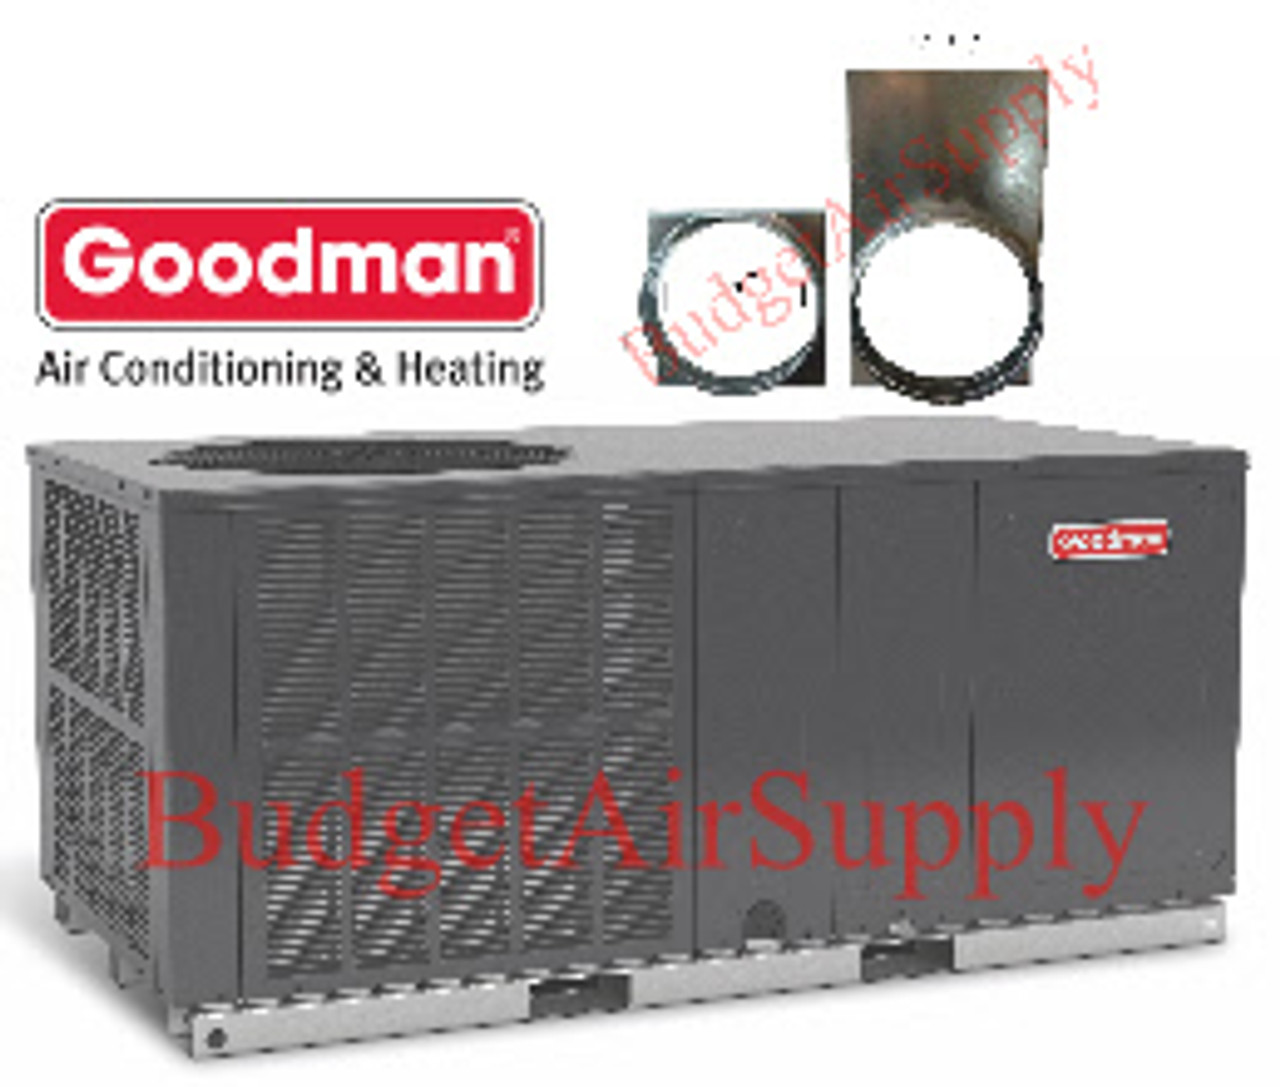 goodman 3 1 2 3 5 ton 14 seer gph1442h41 packaged heat pump a c free adapters budget air supply [ 1280 x 1087 Pixel ]